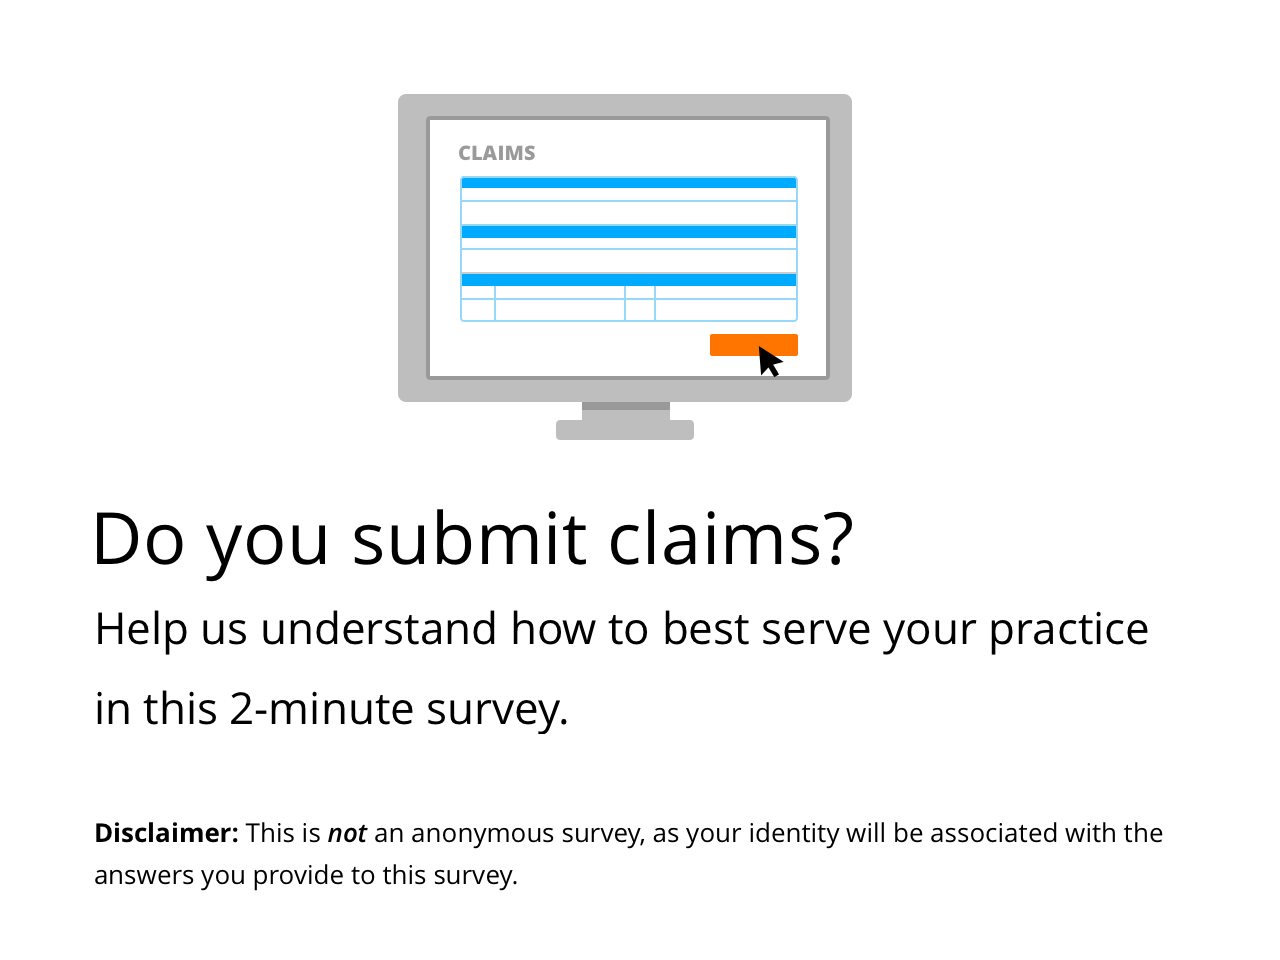 Do you submit claims? Help us understand how to best serve your practice in this 2-minute survey. Disclaimer: this is not an anonymous survey, as your identity will be associated with the answers you provide to this survey.